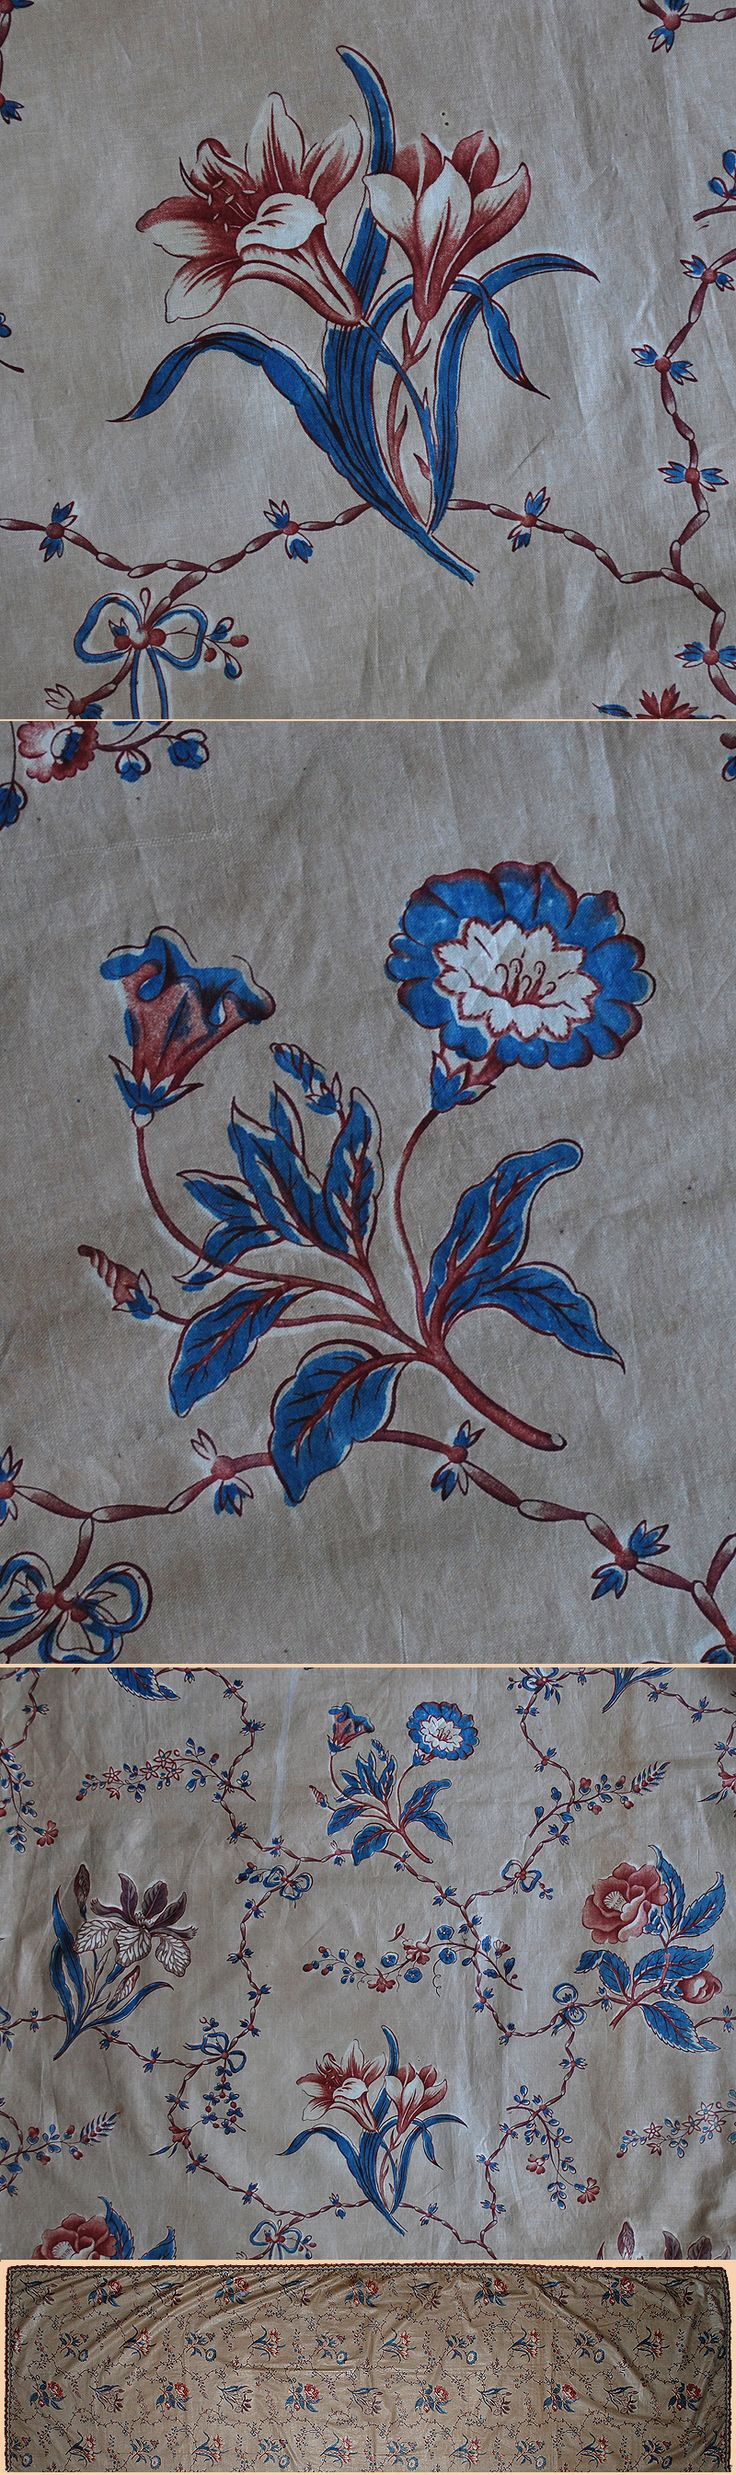 * Antique French Textile, Print on Cotton Oriental Scenes by: Koechlin Ziegler Design by Zipelius Cirica 1824-1840